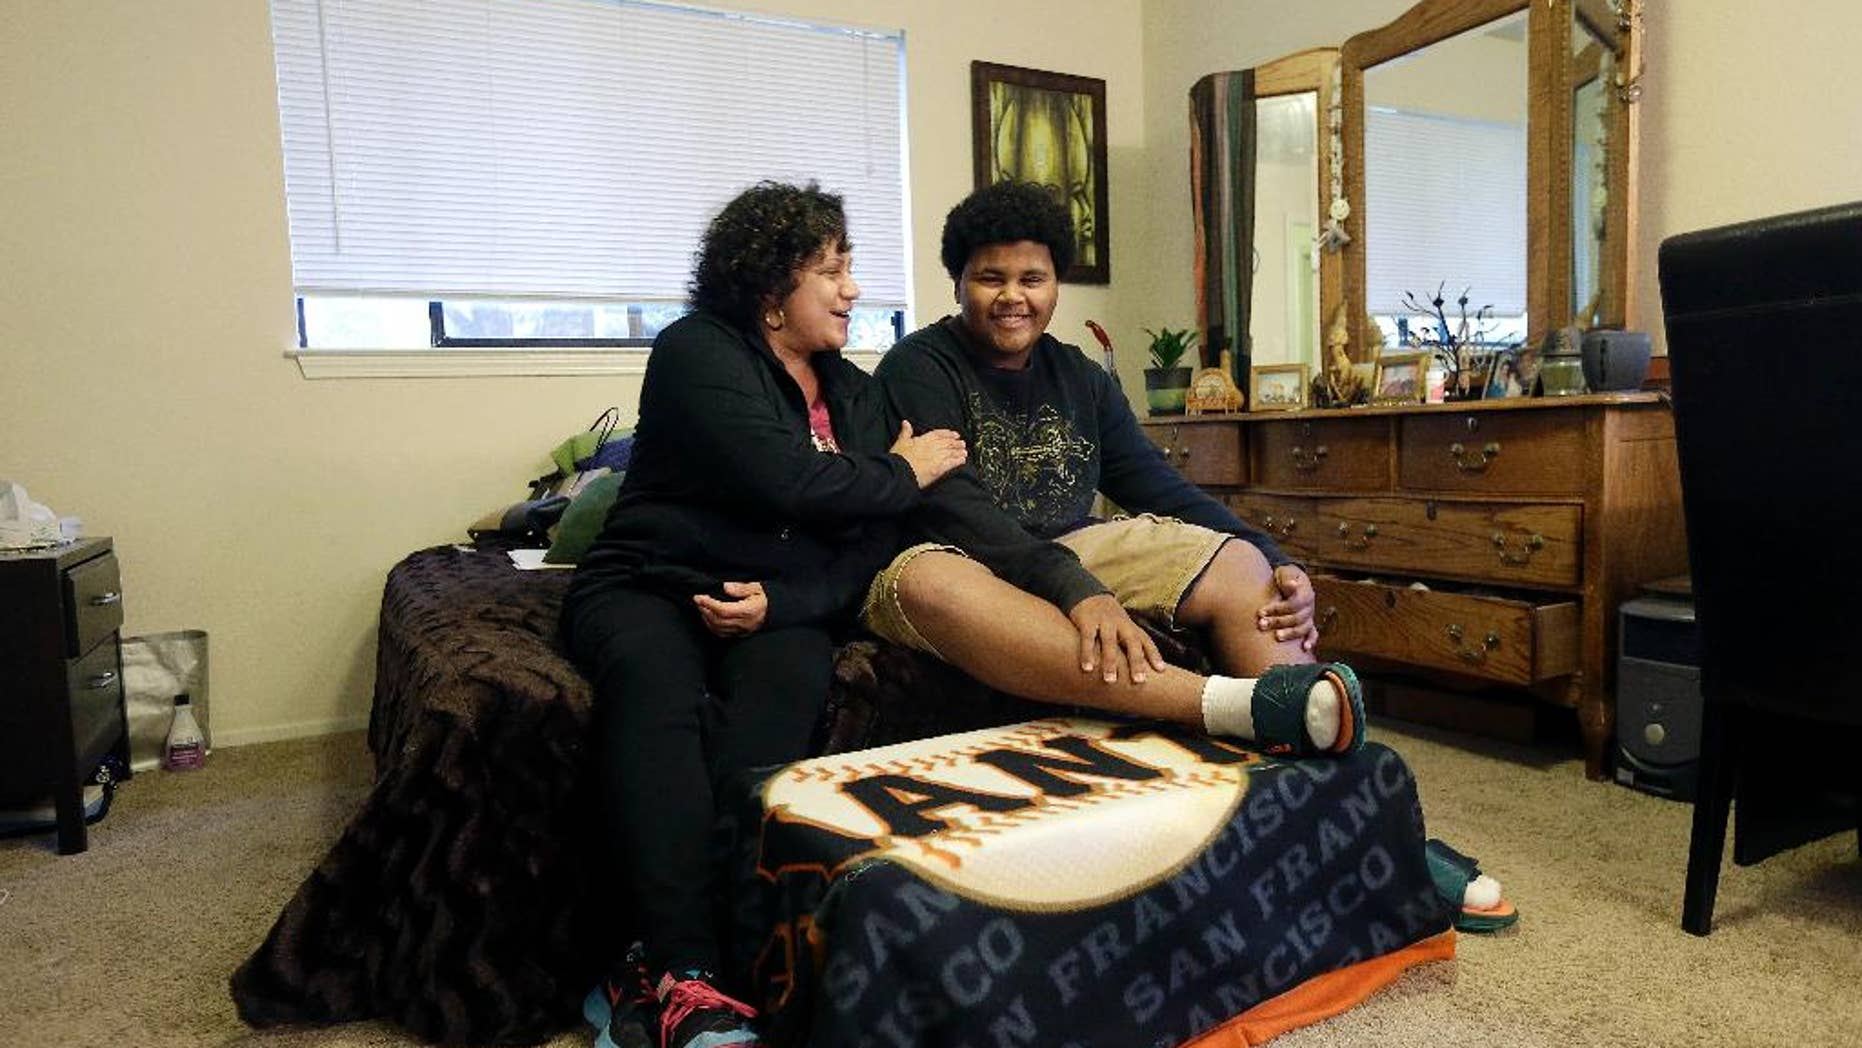 Nov. 13, 2014: In this photo, Gina Cooper, left, and her son Dante Walton, 14, pose for photos at their home in San Carlos, Calif. After a few months as nomads in 2012 when Cooper and Walton, then 12, had to vacate their home when her salary became insufficient to pay the rent, they found shelter and support with an interfaith program and stayed there five months before Cooper saved enough to be able to afford housing on her own.